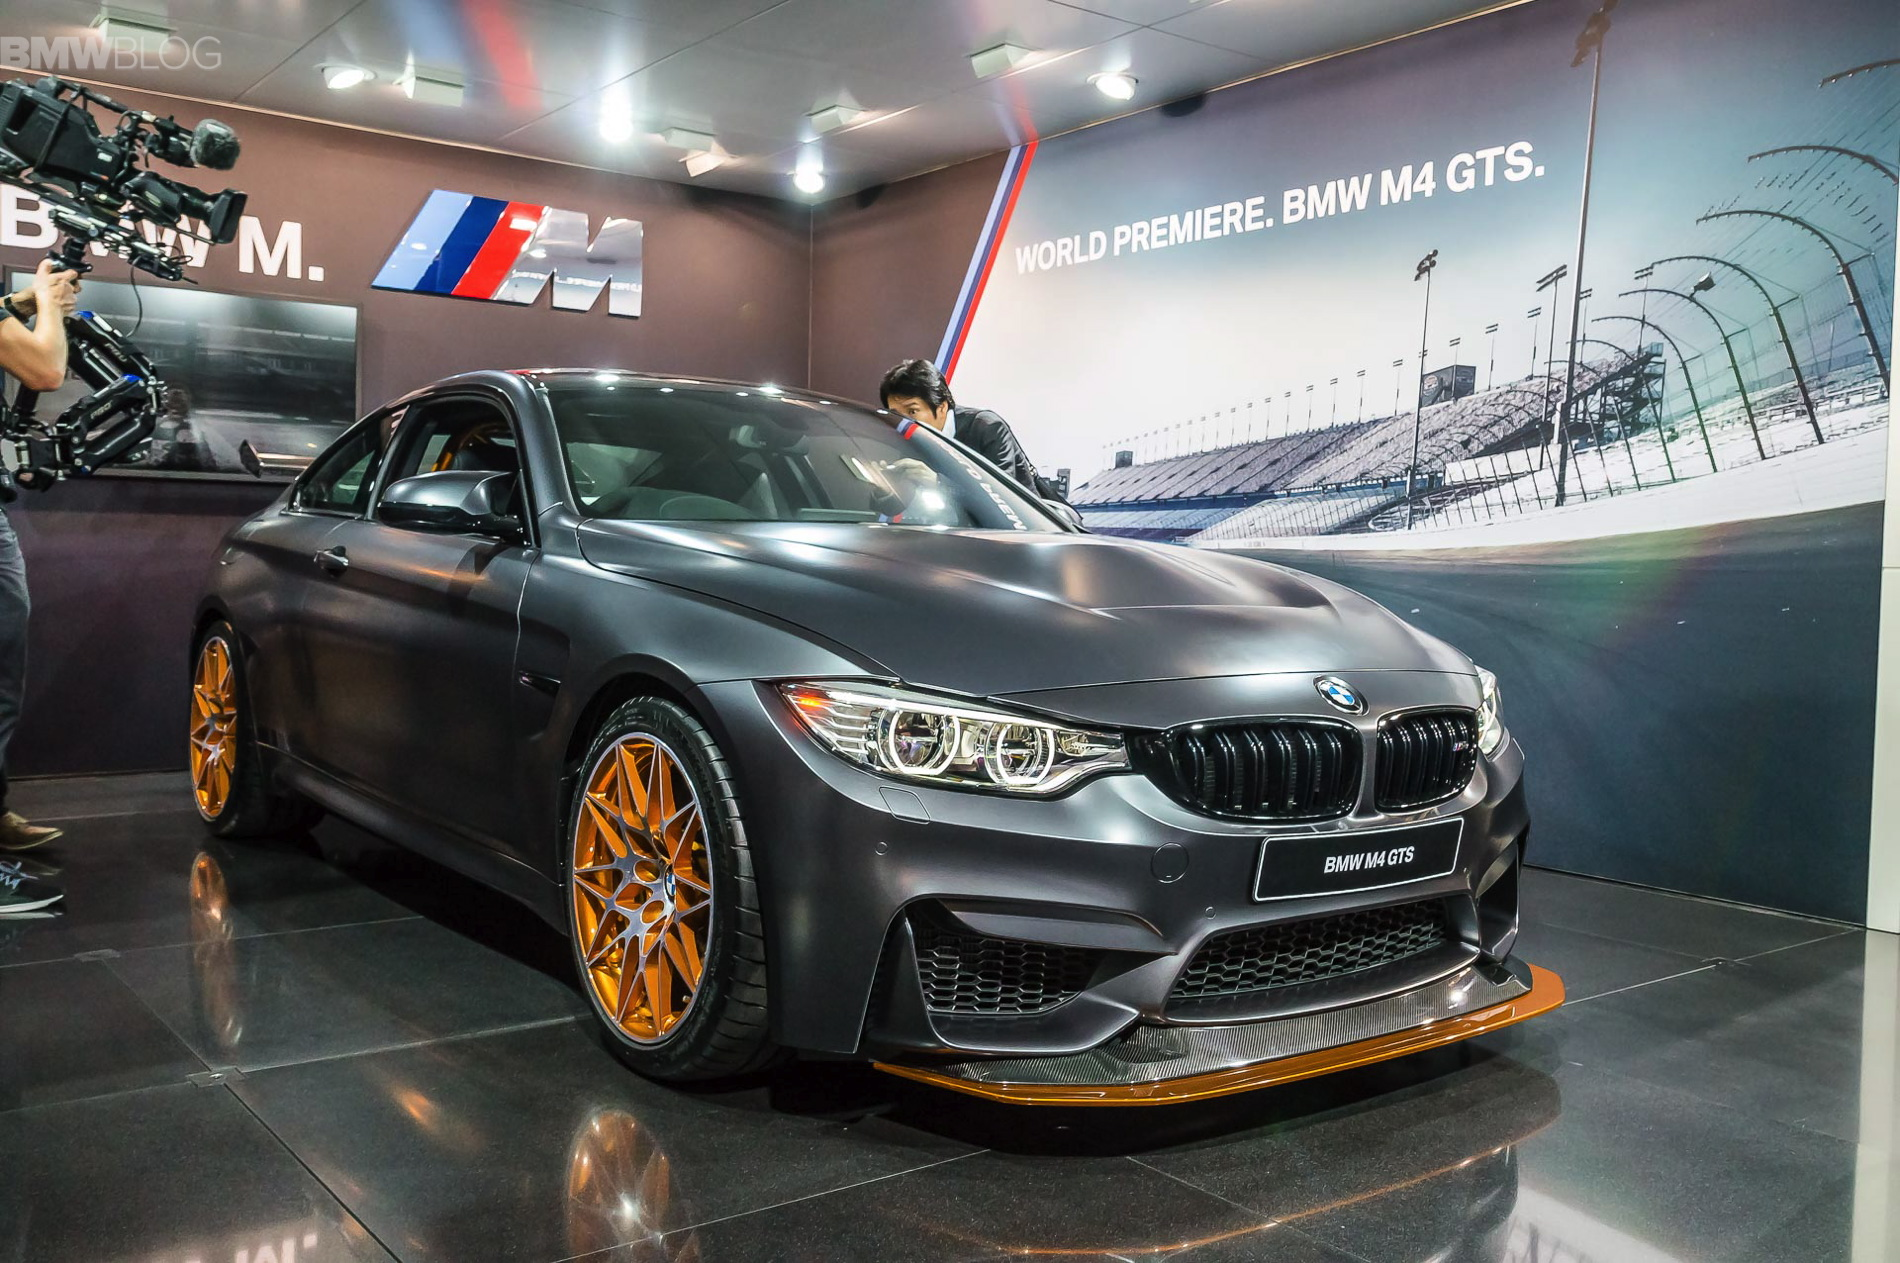 Bmw Builds Only Five M4 Gts Models Per Day